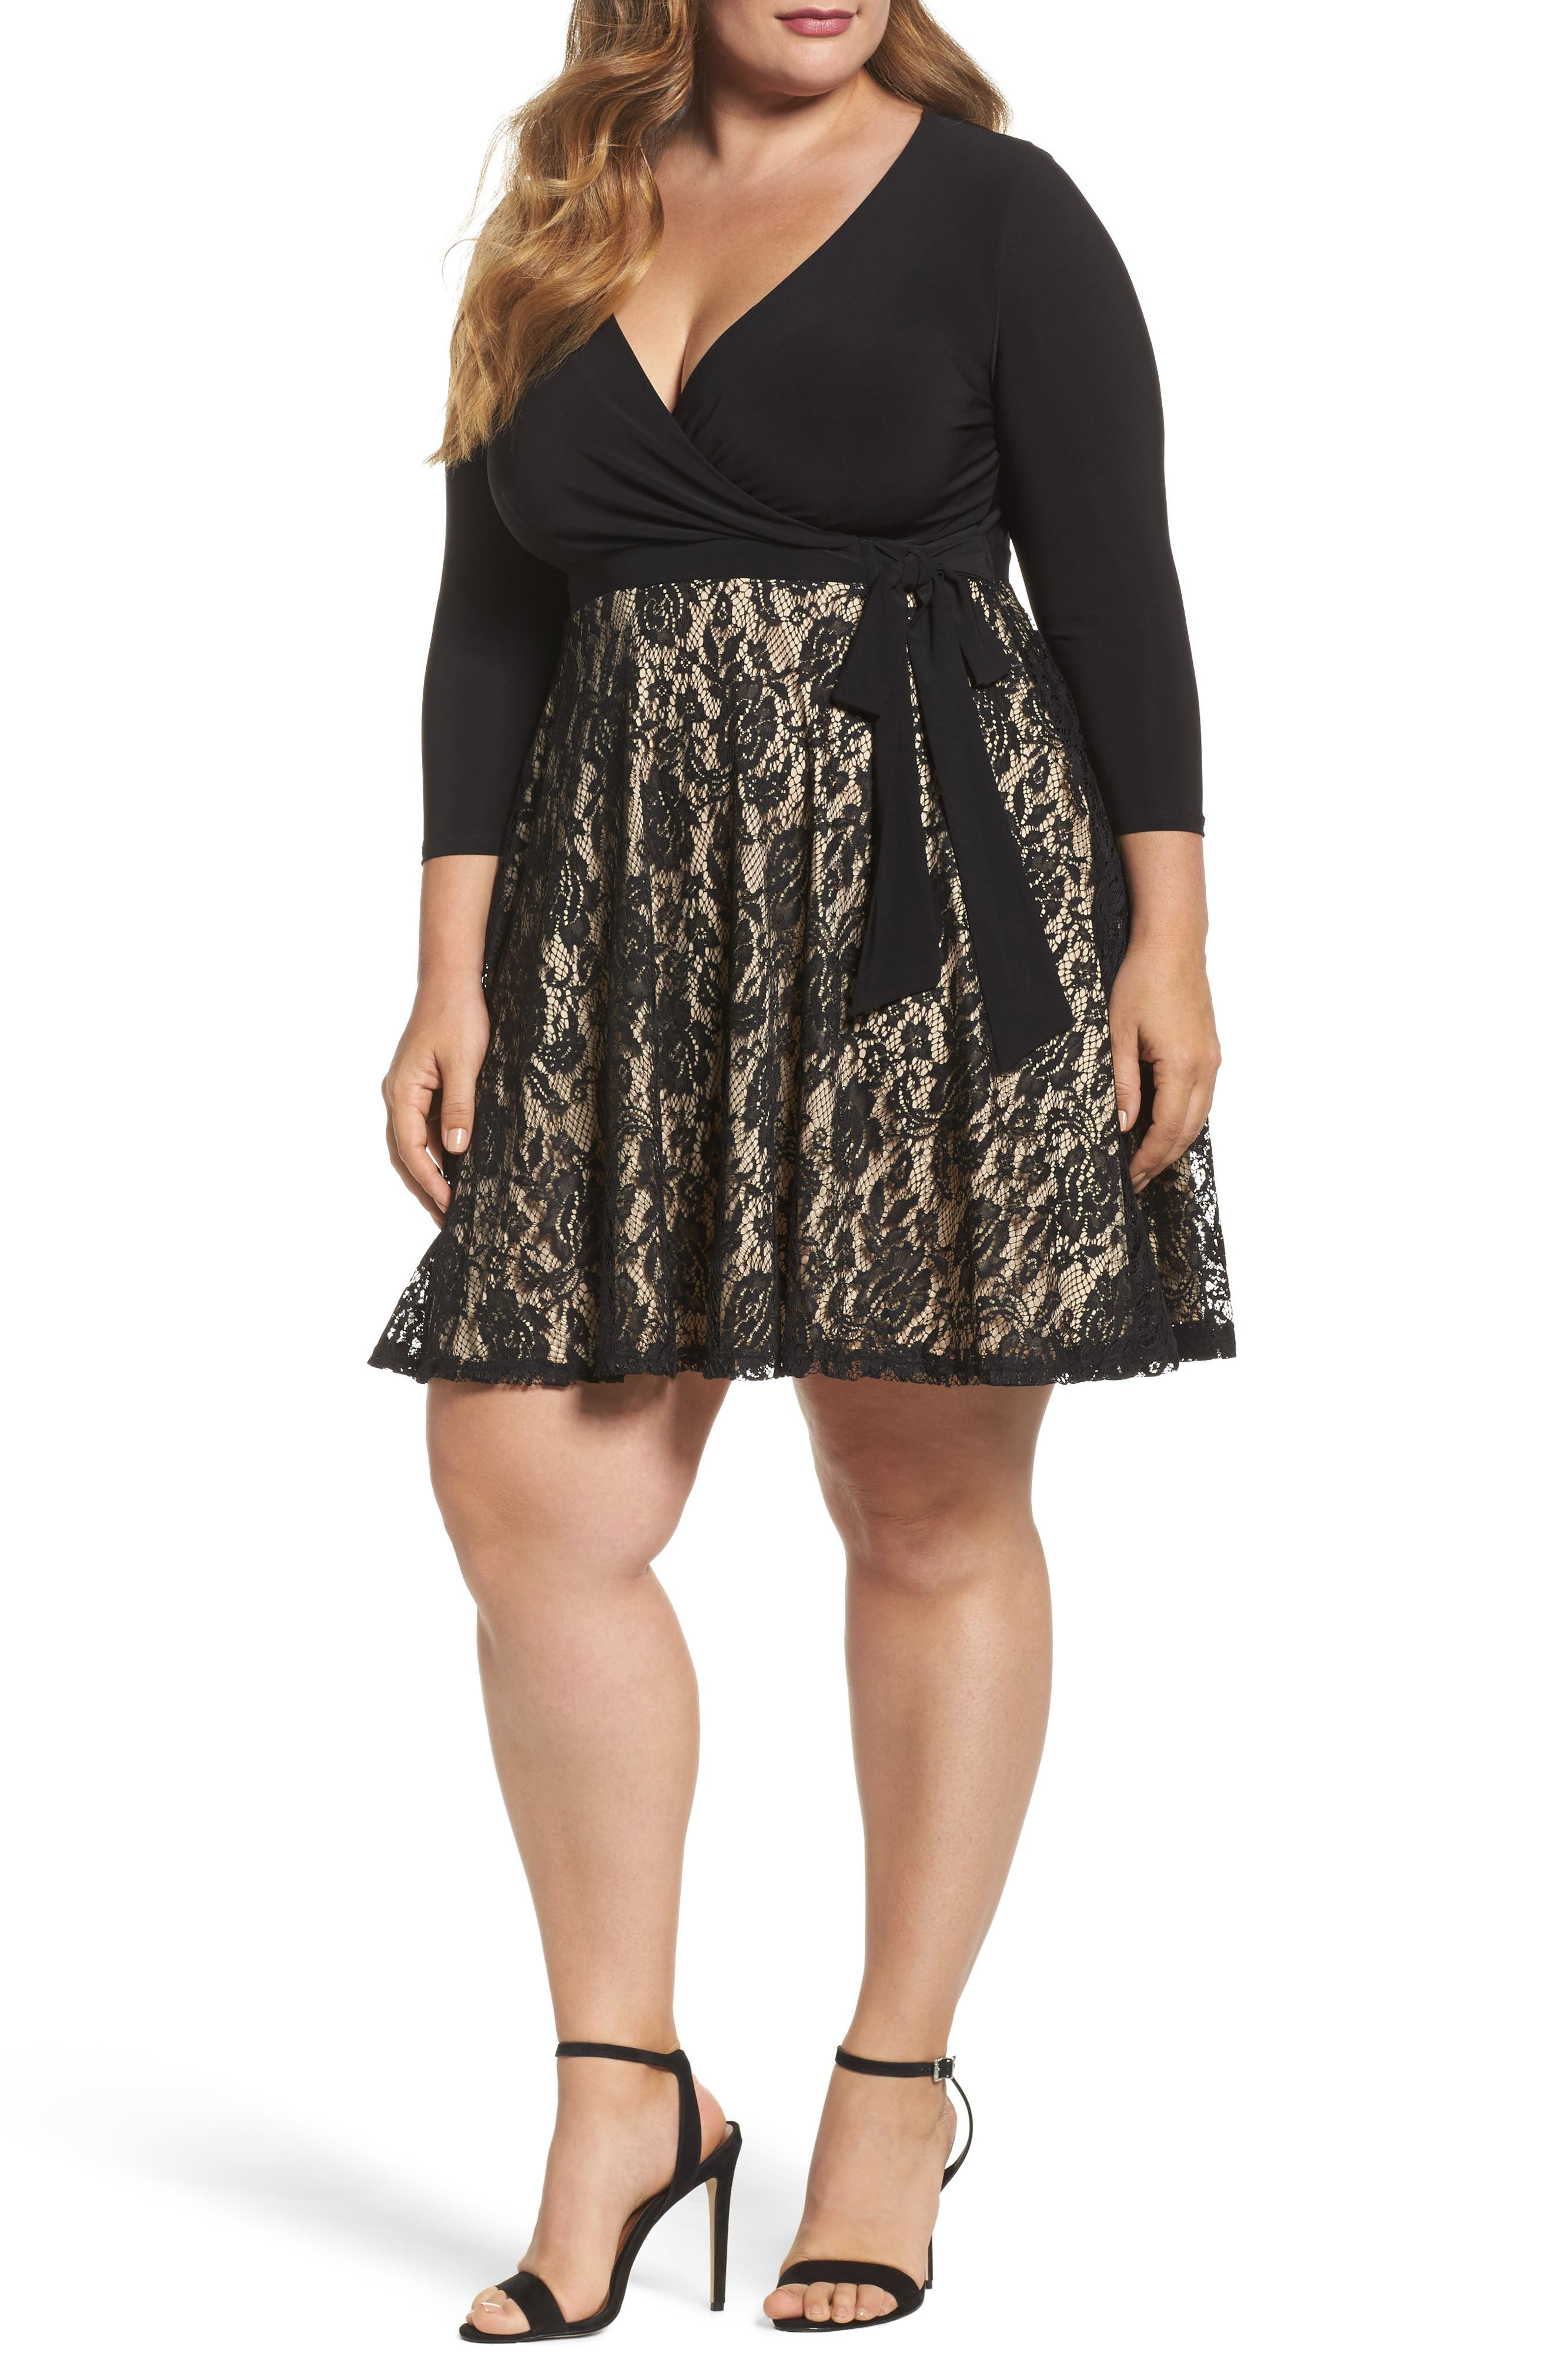 Lace Skirt Skater Dress,                             Main thumbnail 1, color,                             001